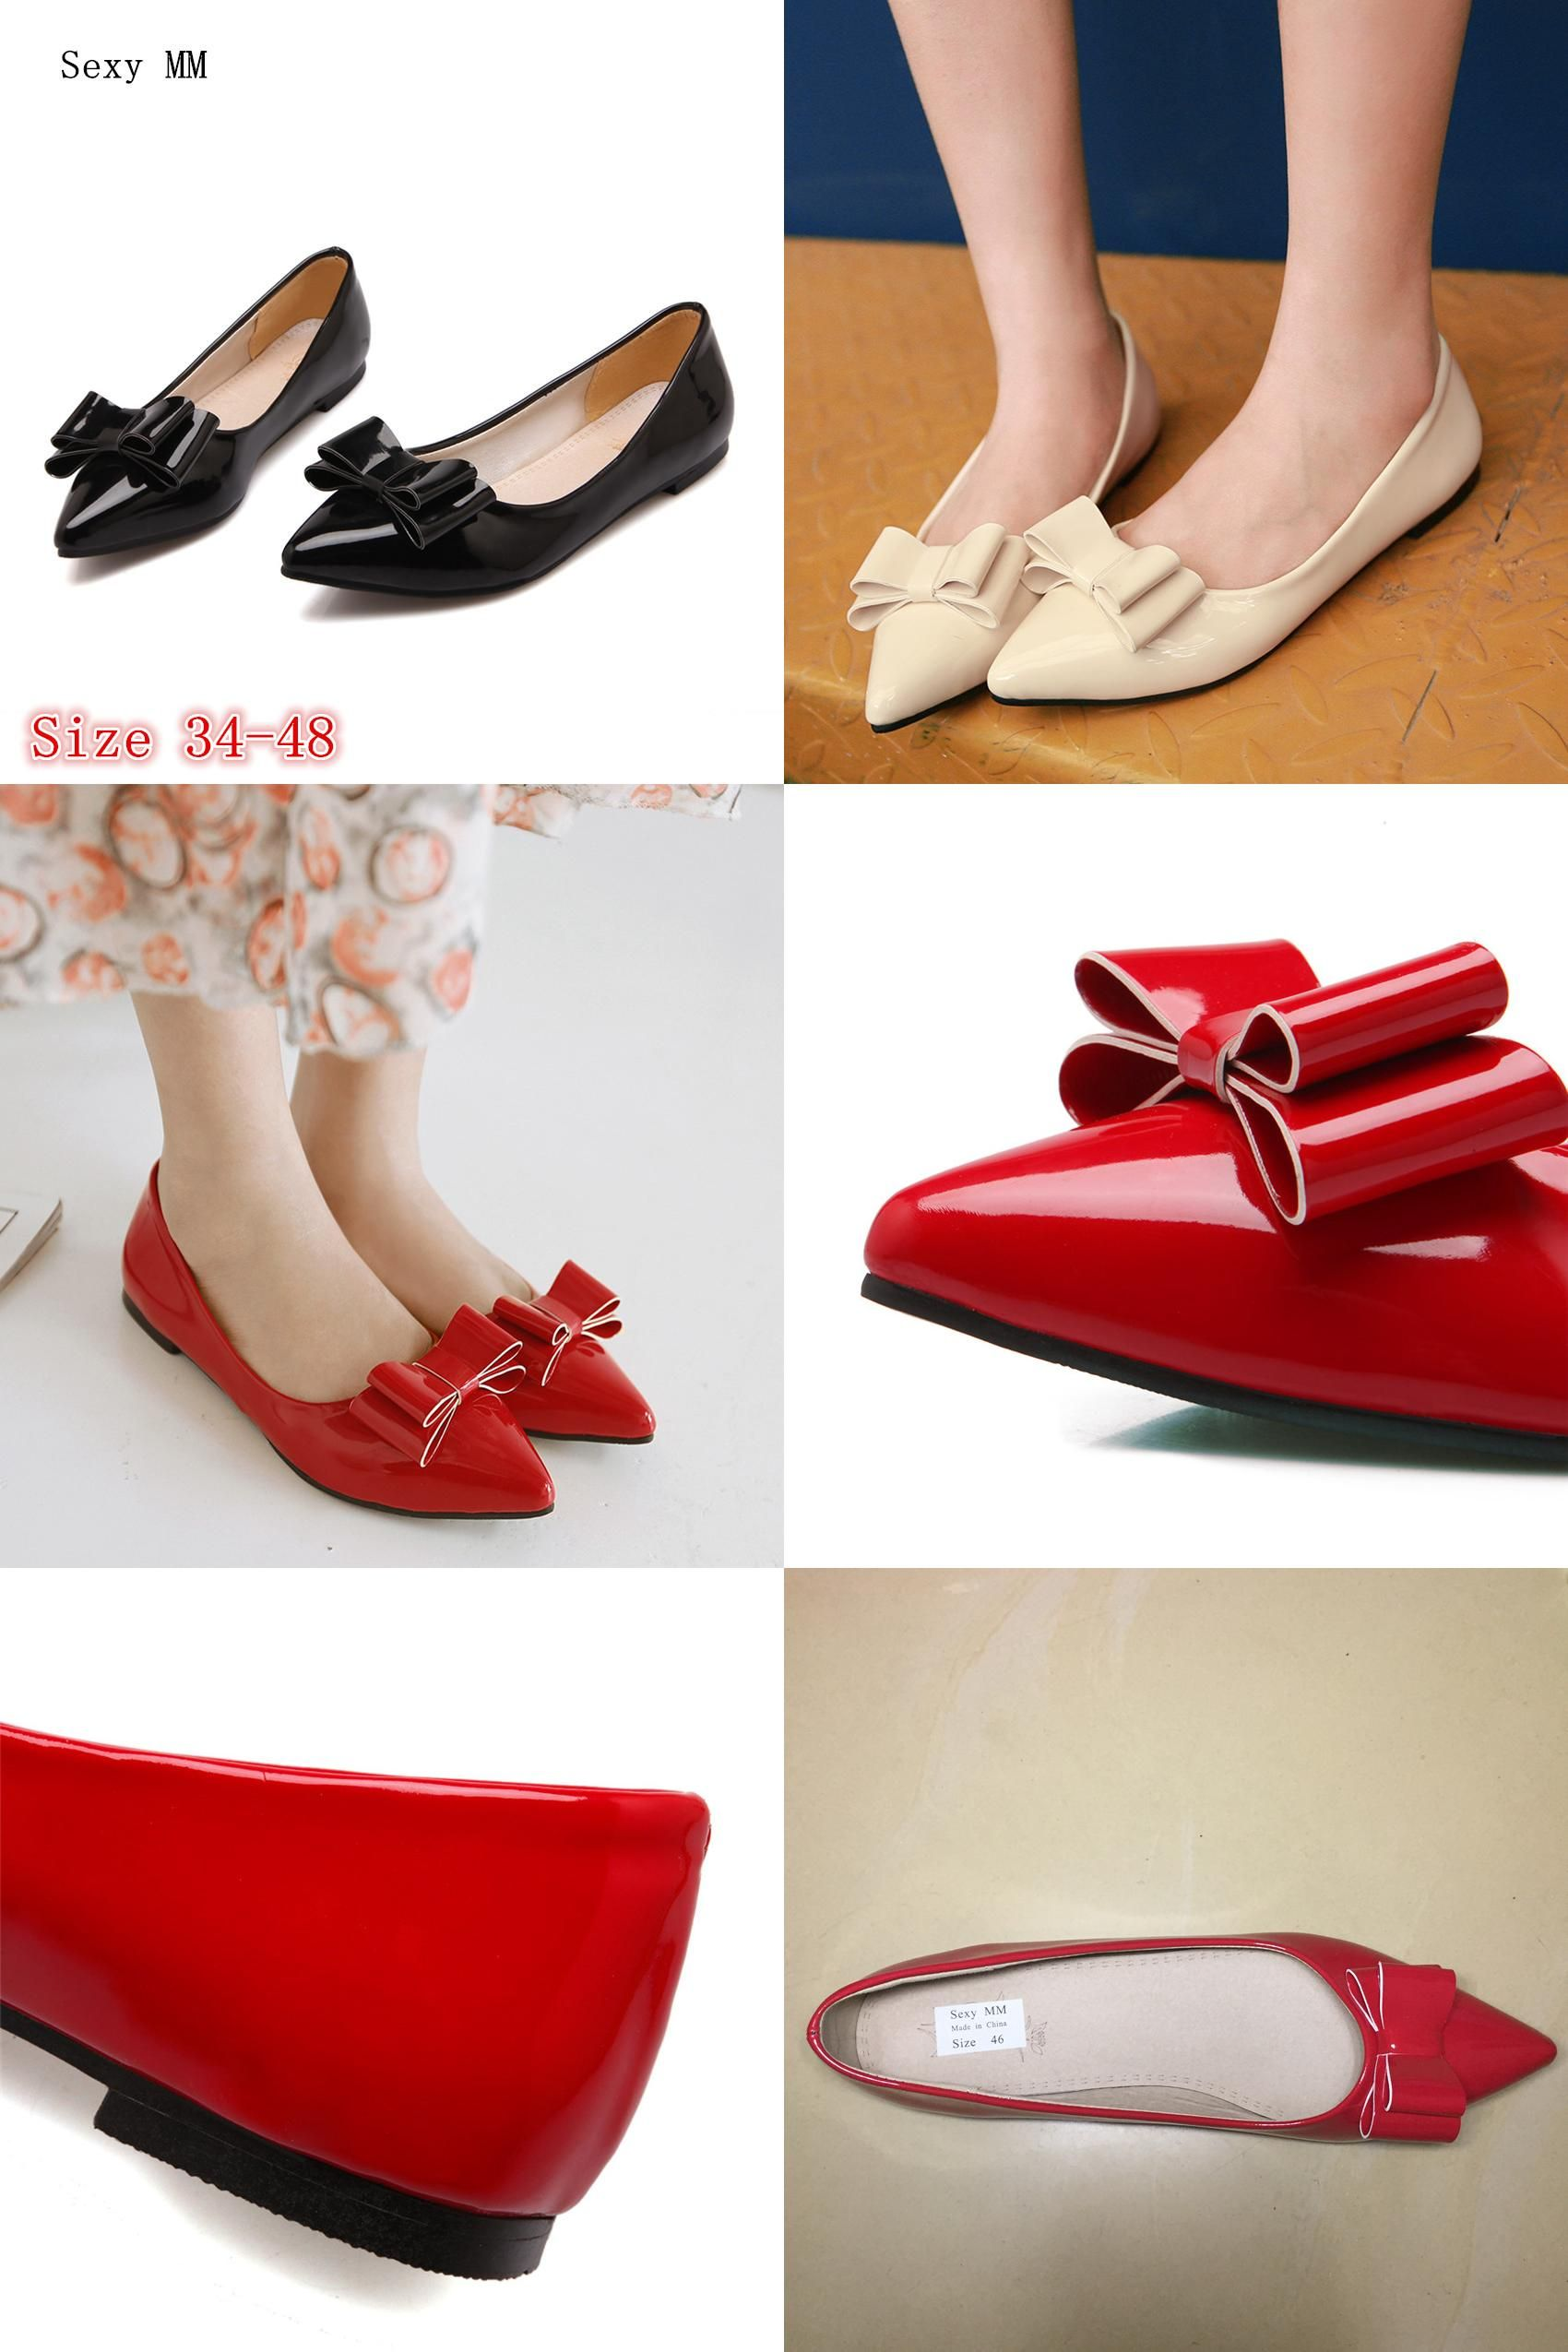 2018 Women Summer Sexy Round Toe Breathable Flats Lace Up Rivet Beach Sandals Plus Size34-43 Boho Casual Flat Shoes 100% guaranteed online OmywGMvZ0